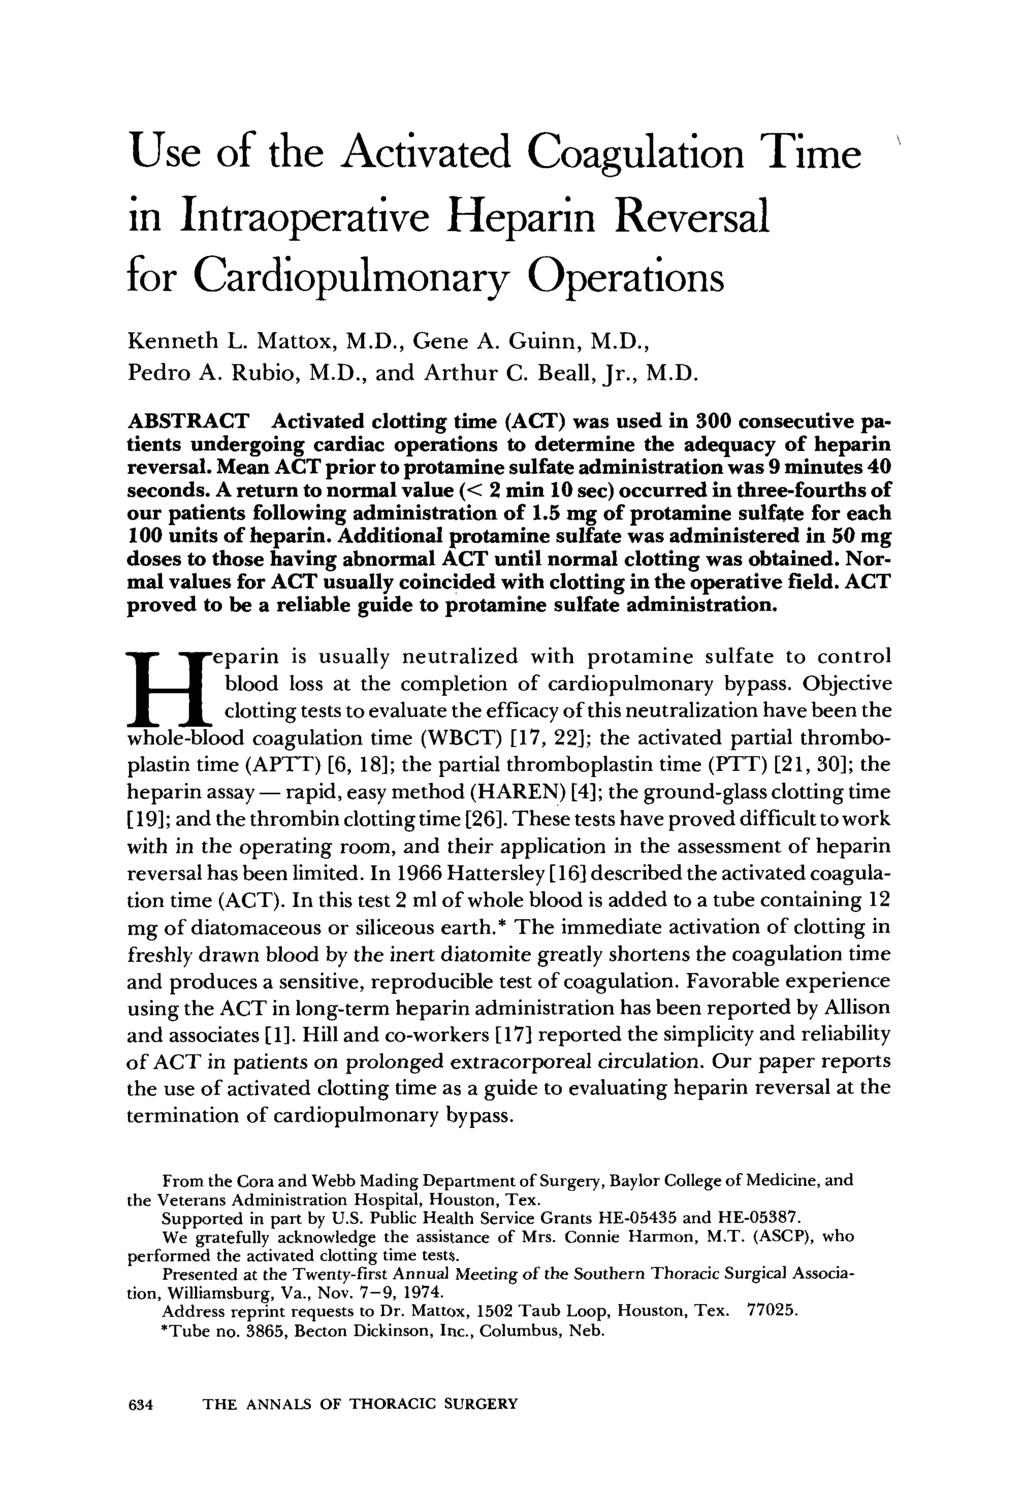 Use of the Activated Coagulation Time in In traoperative Heparin Reversal for Cardiopulmonary Operations ' Kenneth L. Mattox, M.D., Gene A. Guinn, M.D., Pedro A. Rubio, M.D., and Arthur C. Beall, Jr.